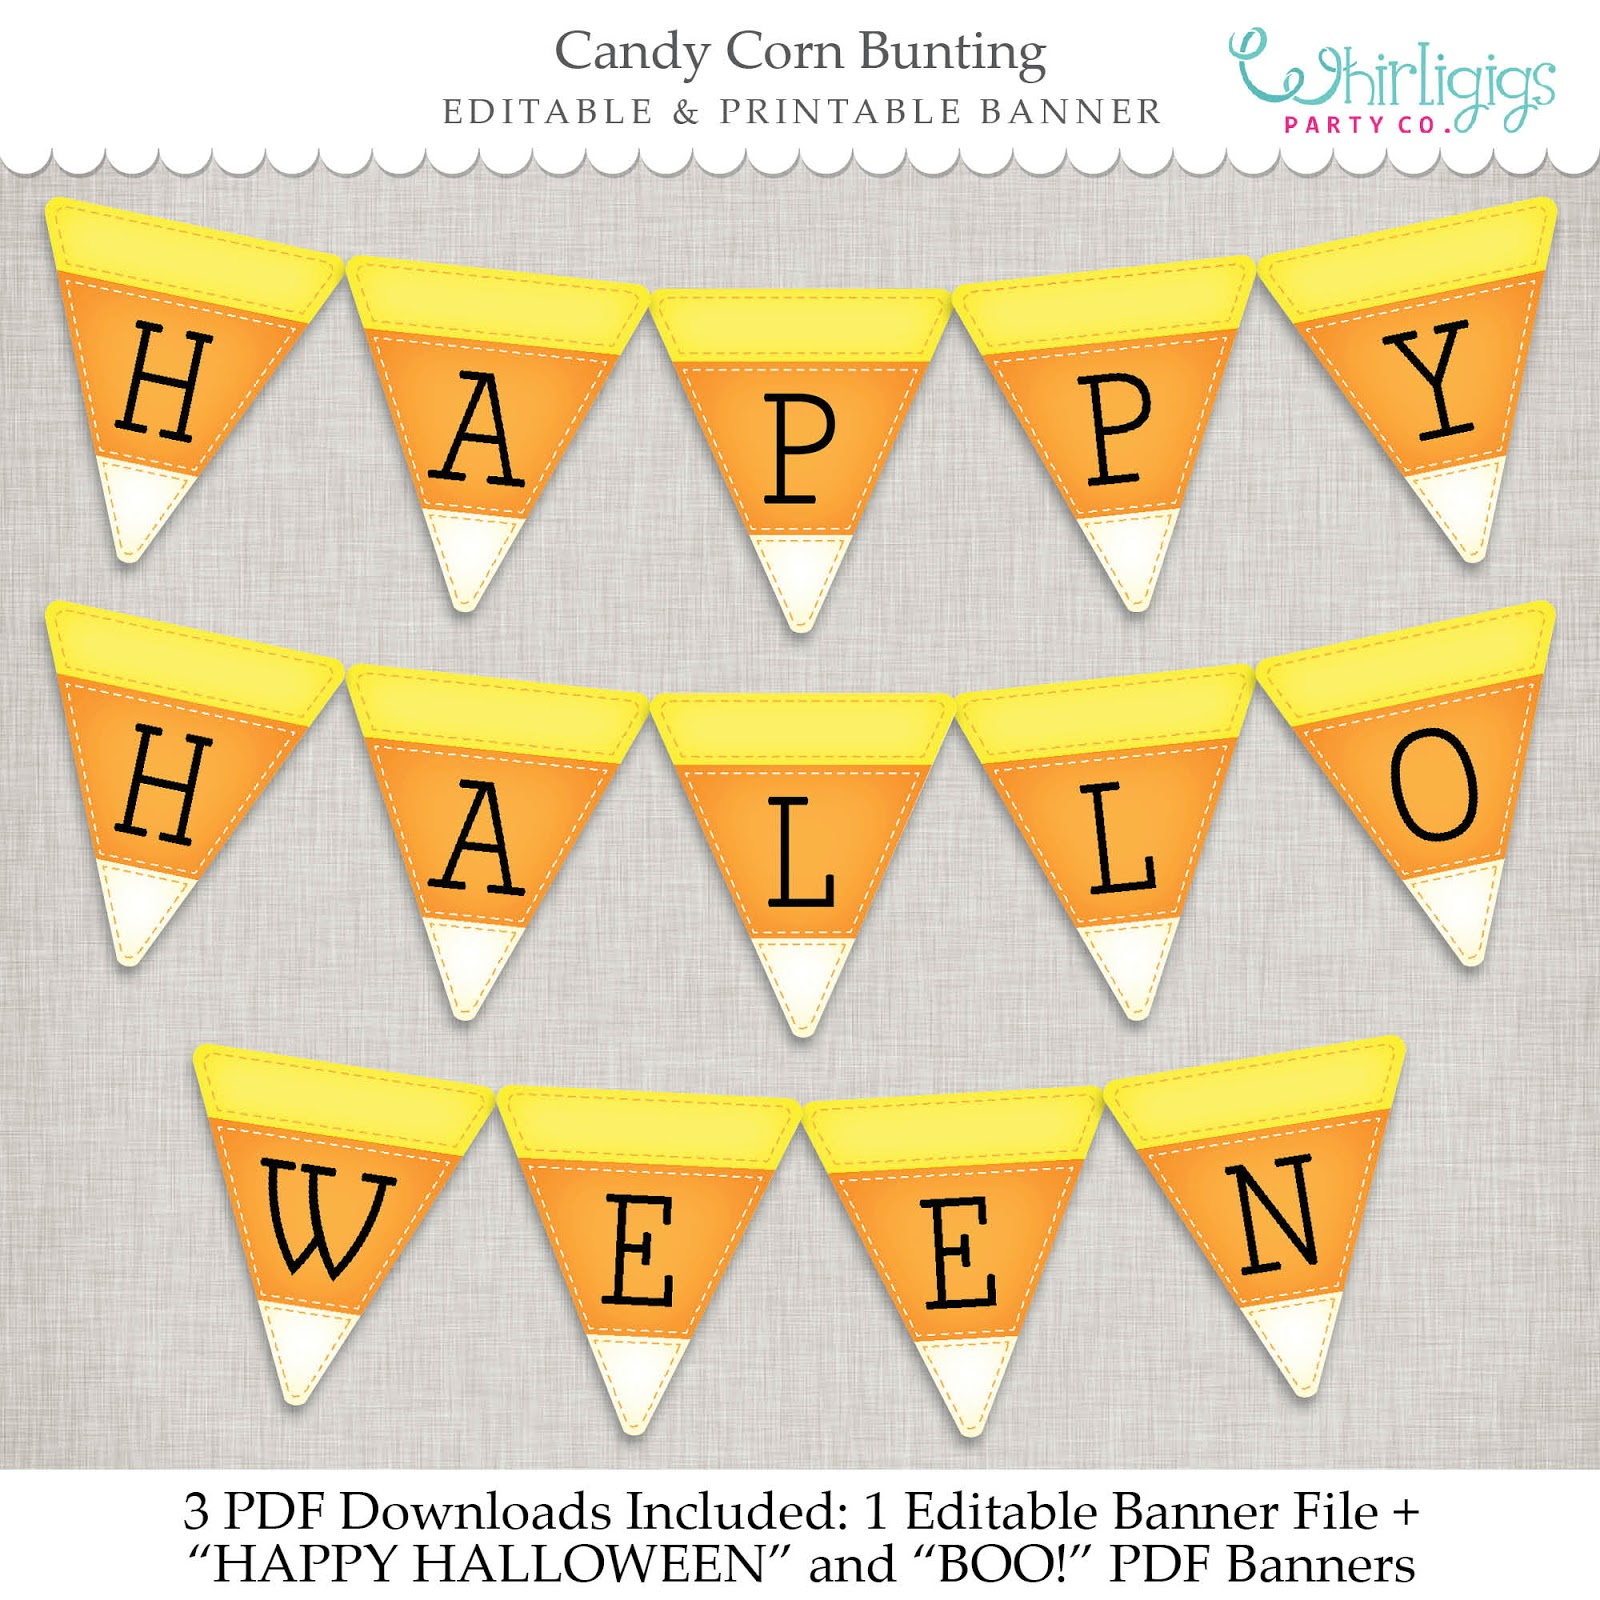 whirligigs party co halloween banners to make